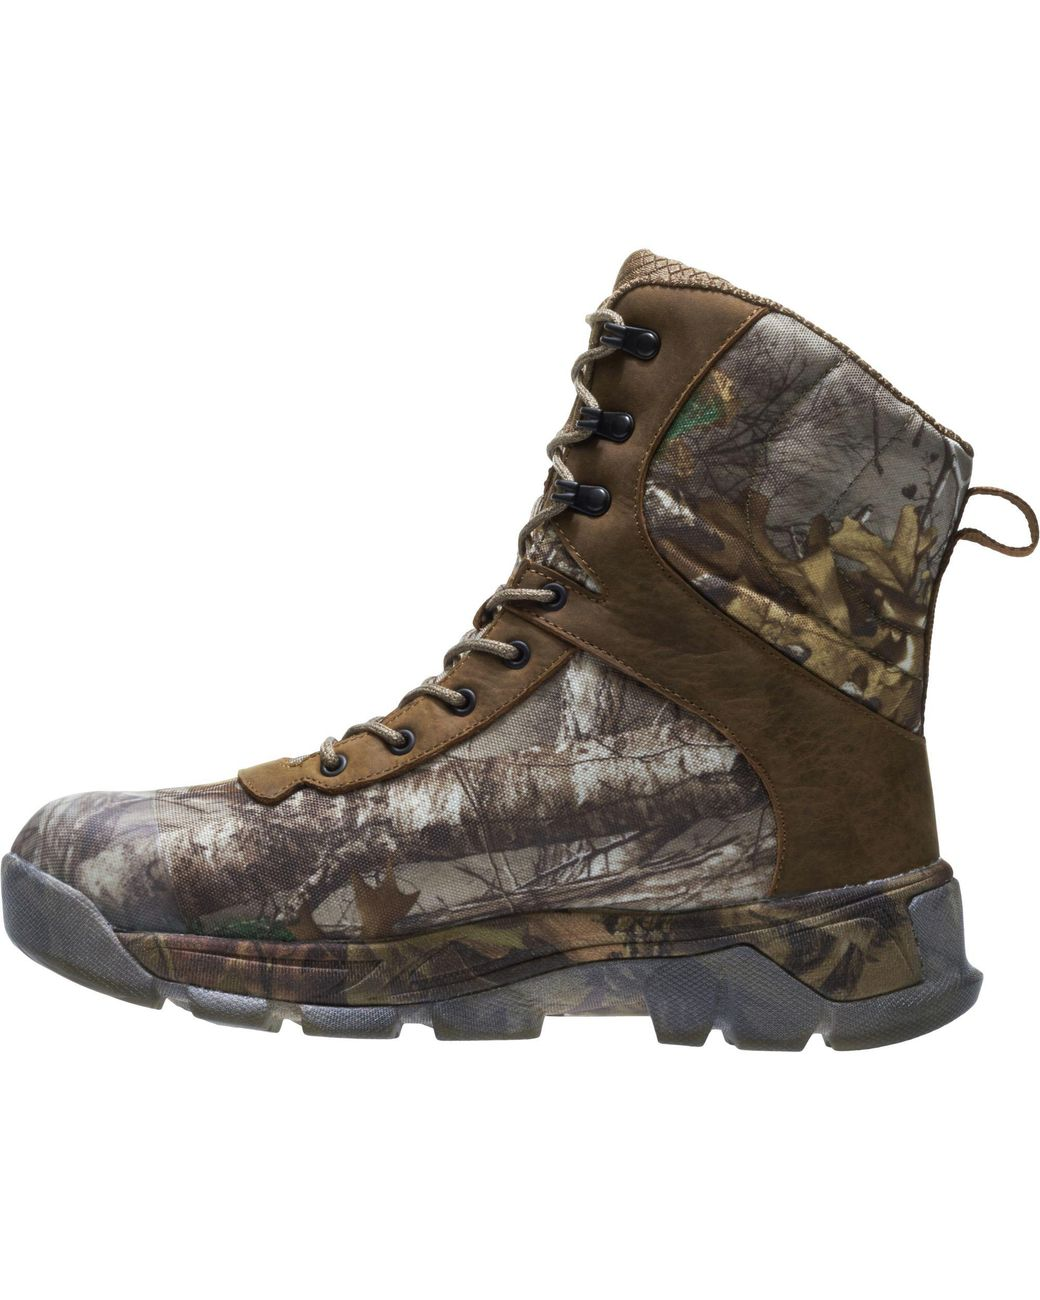 400g Waterproof Hunting Boots